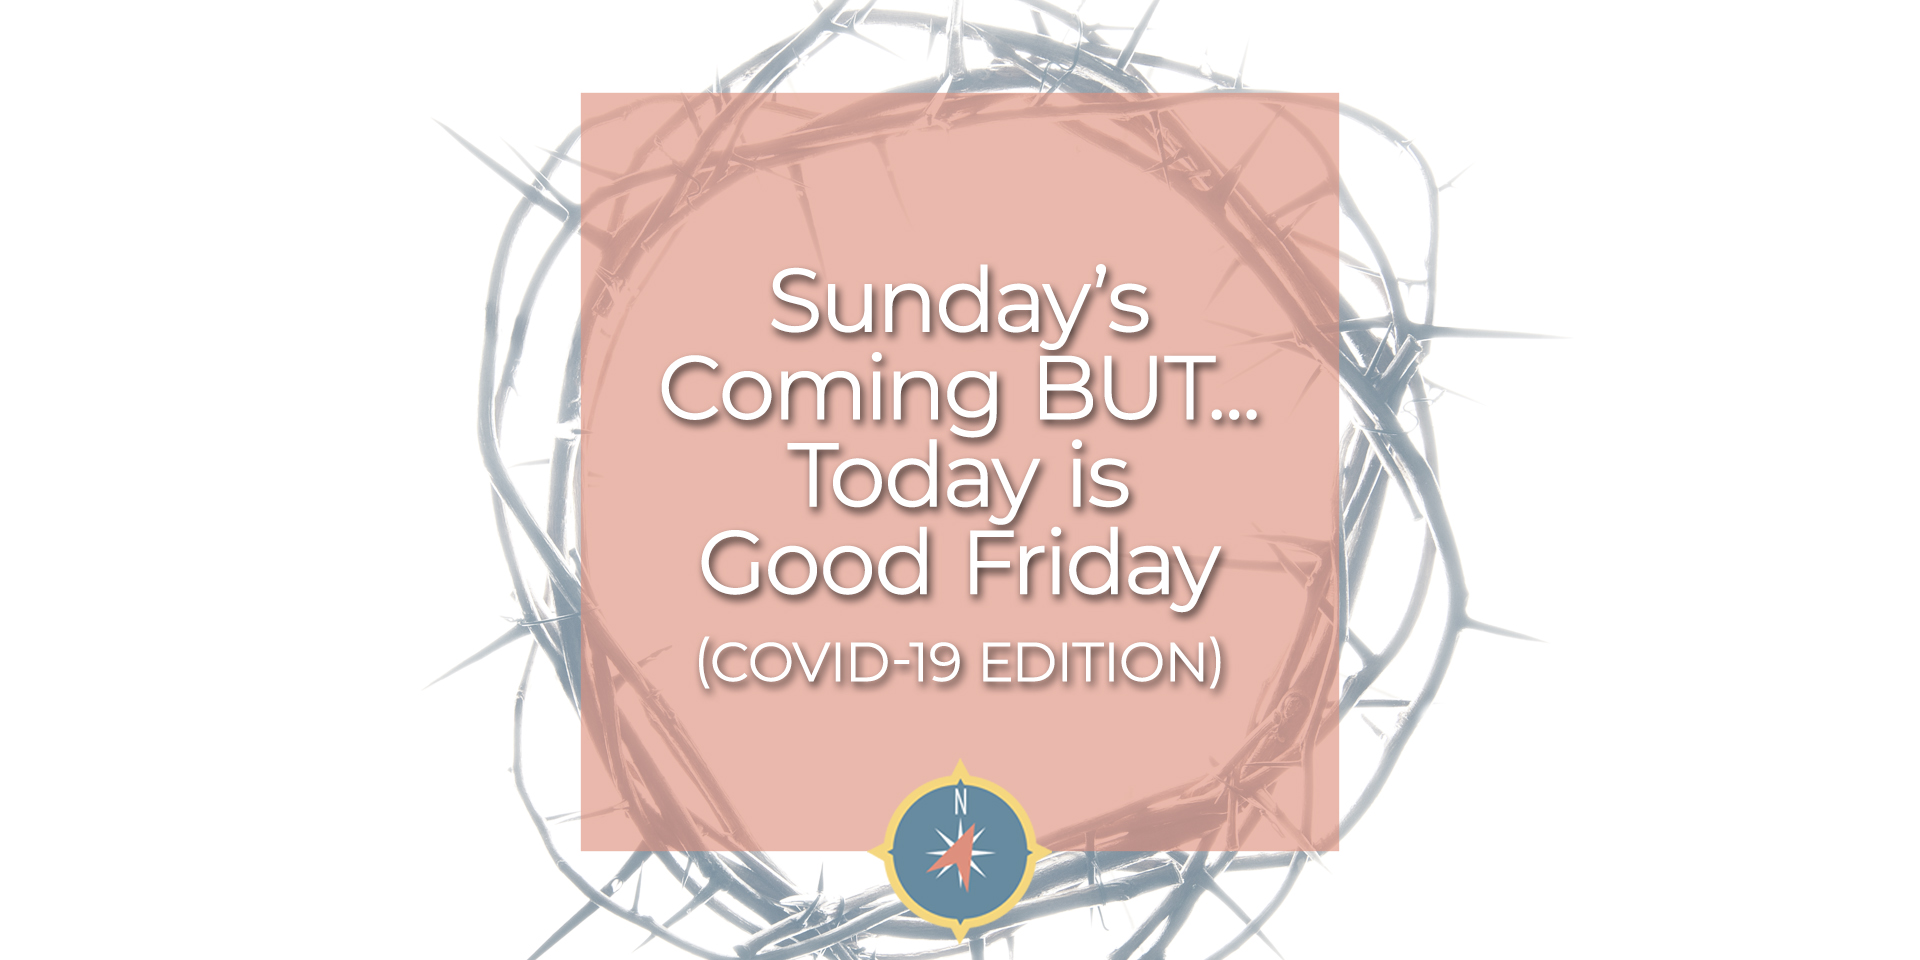 Sunday's Coming BUT Today is Good Friday (COVID-19 Edition)